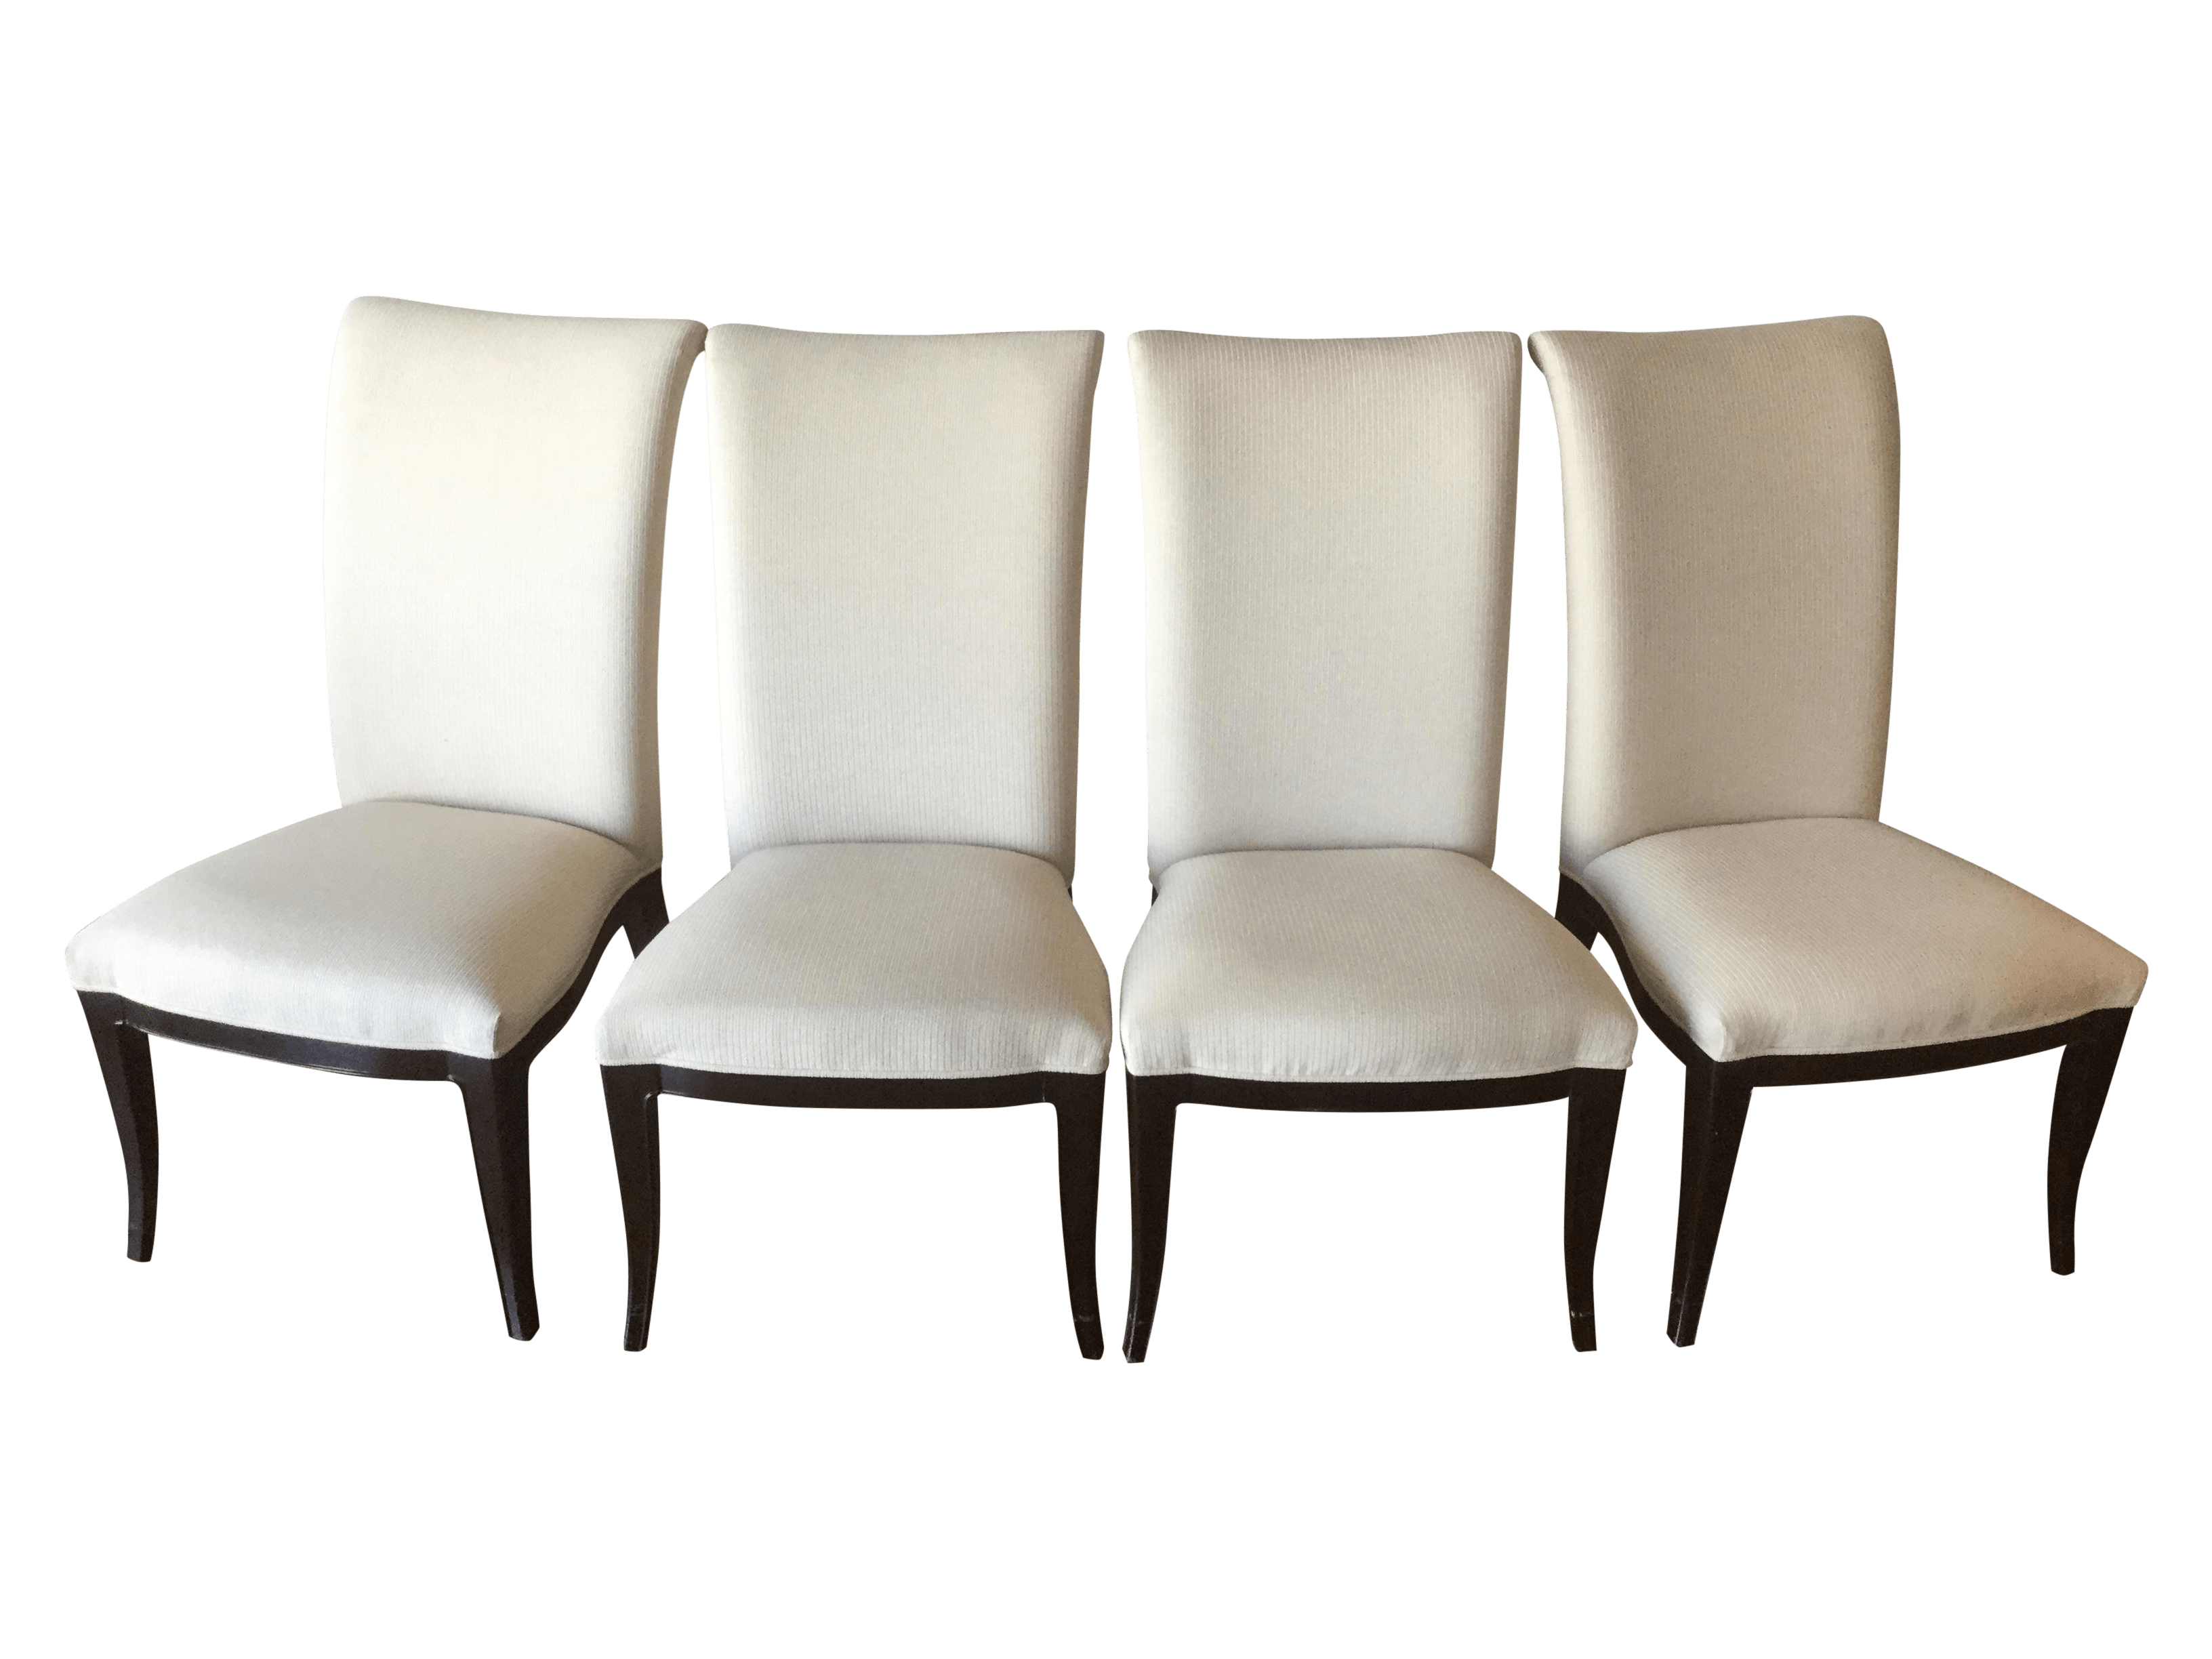 s dining chair sit me up baby activity toys thomasville nocturne upholstered chairs 4 chairish for sale